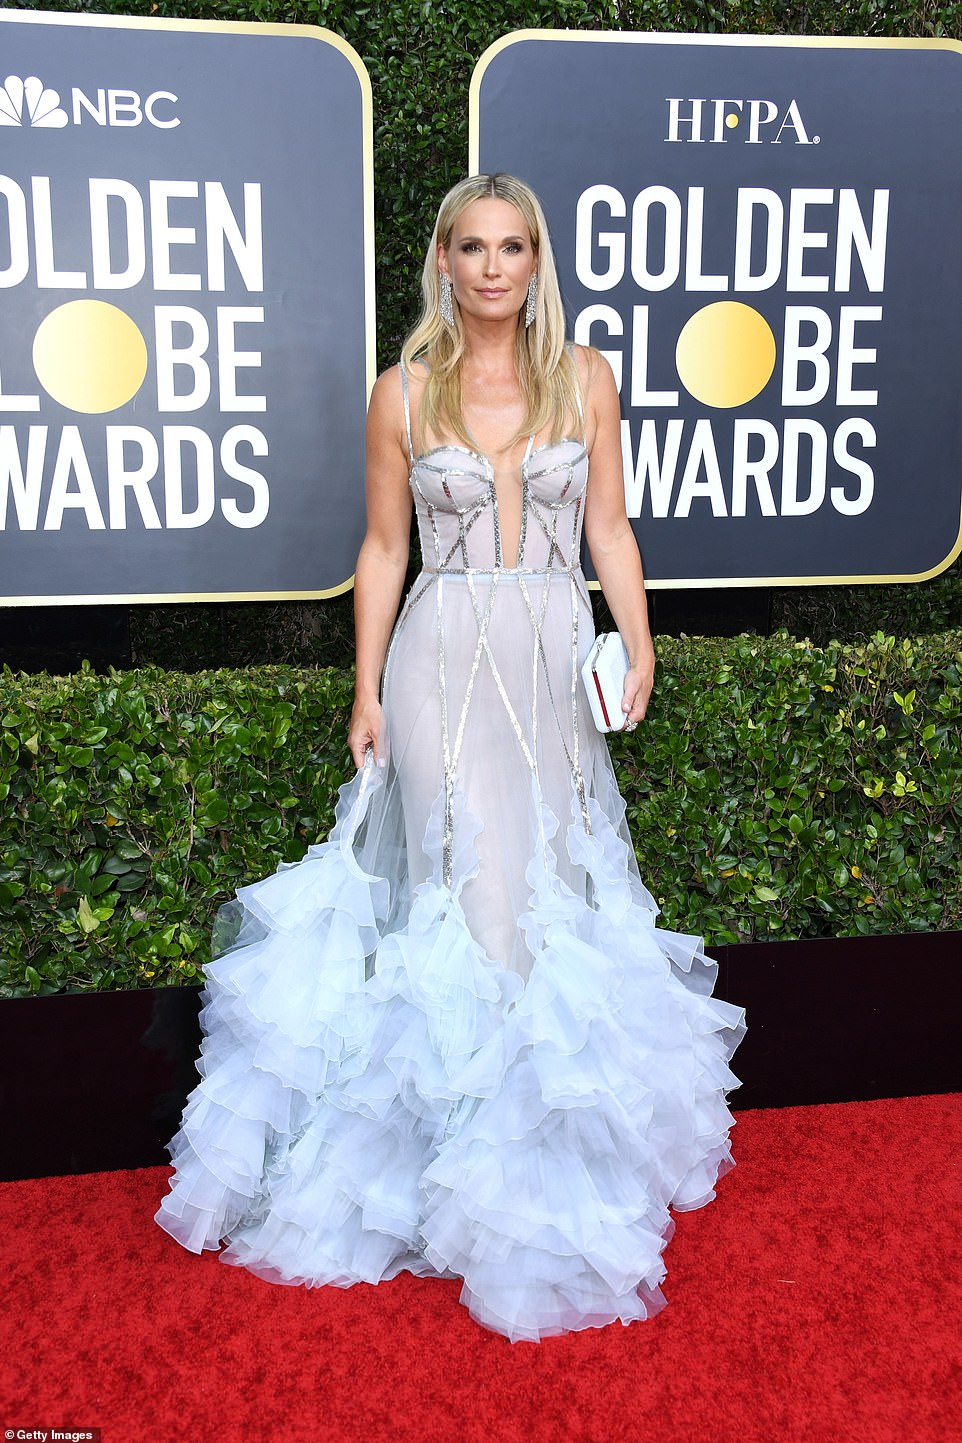 Molly Sims In Her Ice Blue Long Gown with A Pair of Glittering Earrings